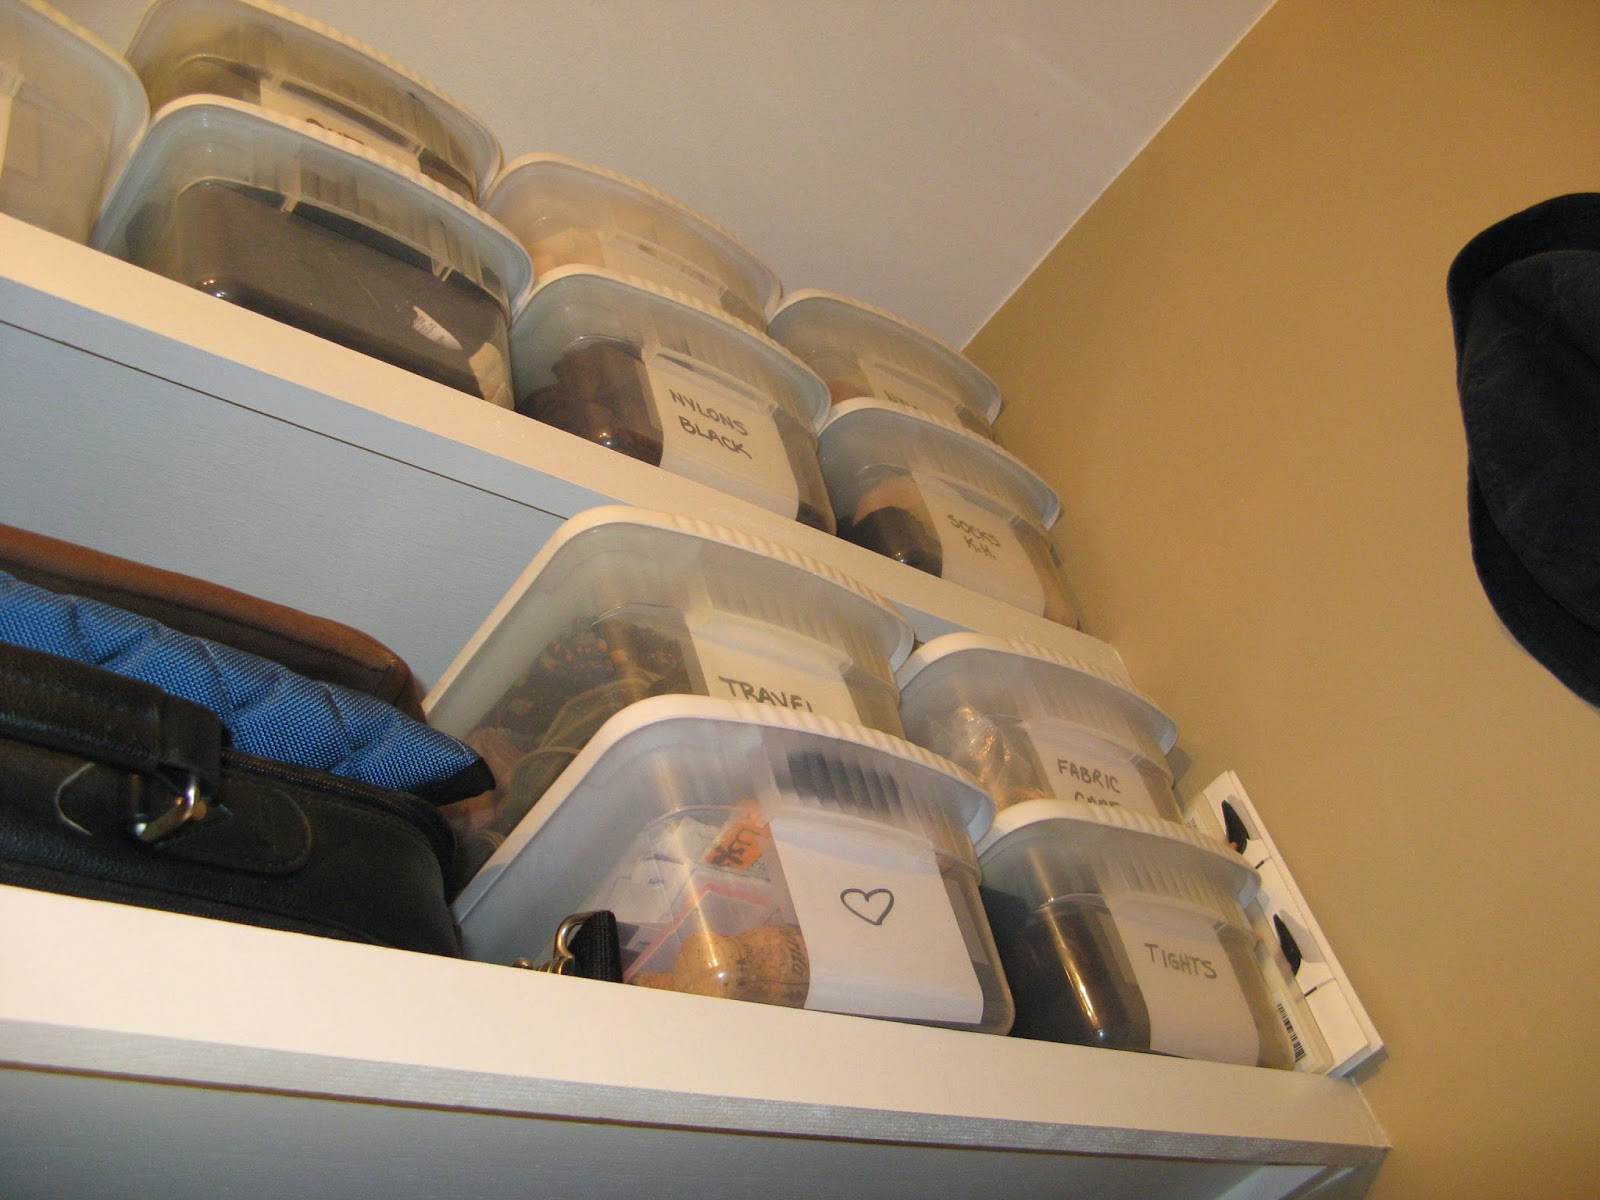 14 Closet Organizing Tips - CLEAR STACKABLE BINS